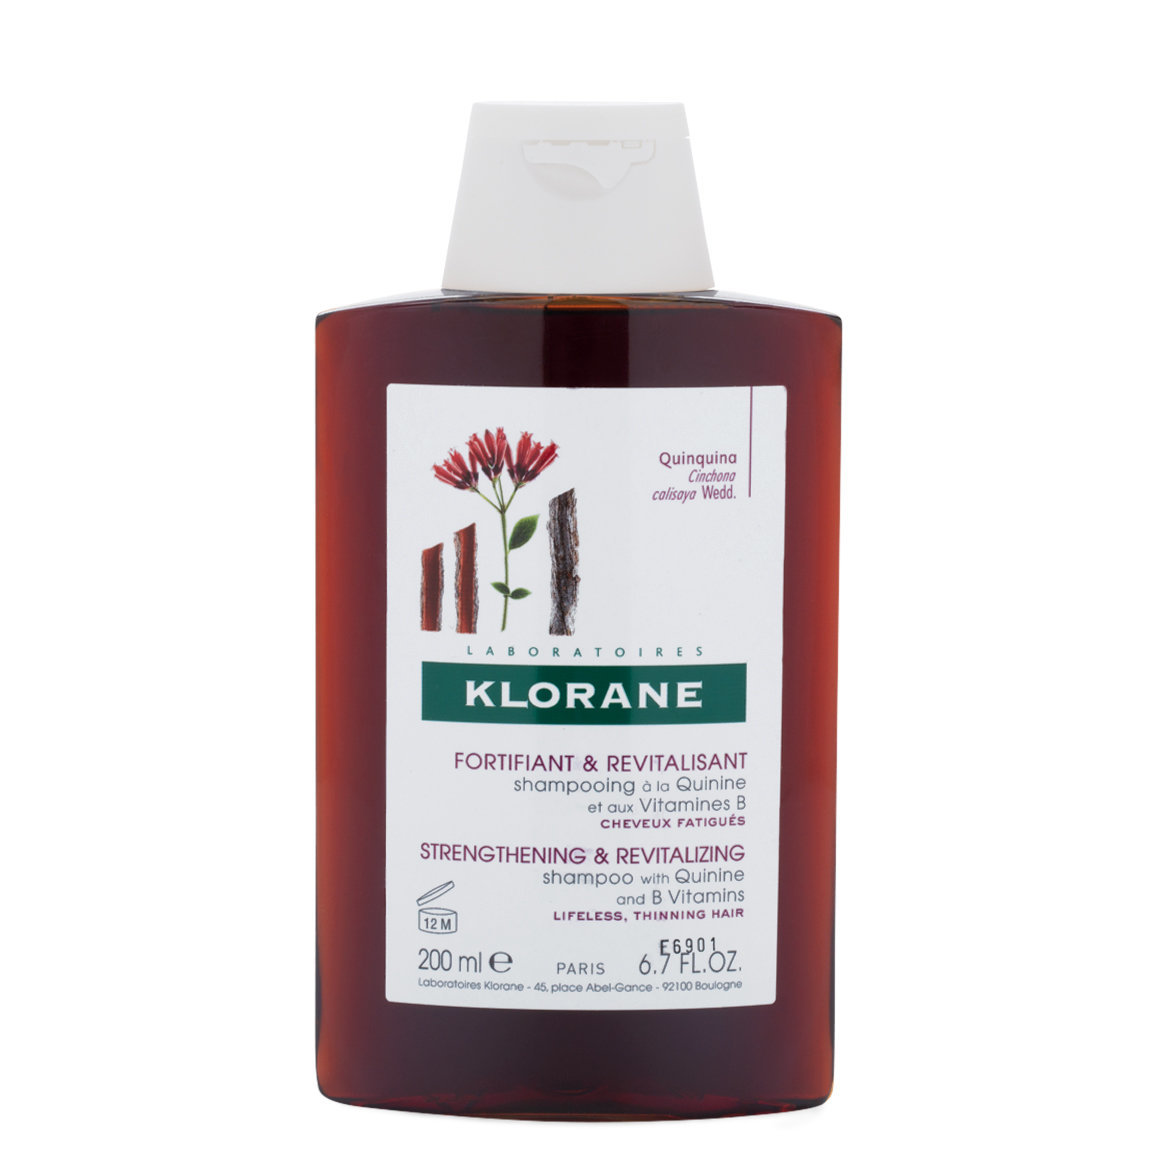 Klorane Shampoo with Quinine and B Vitamins 6.7 oz product swatch.